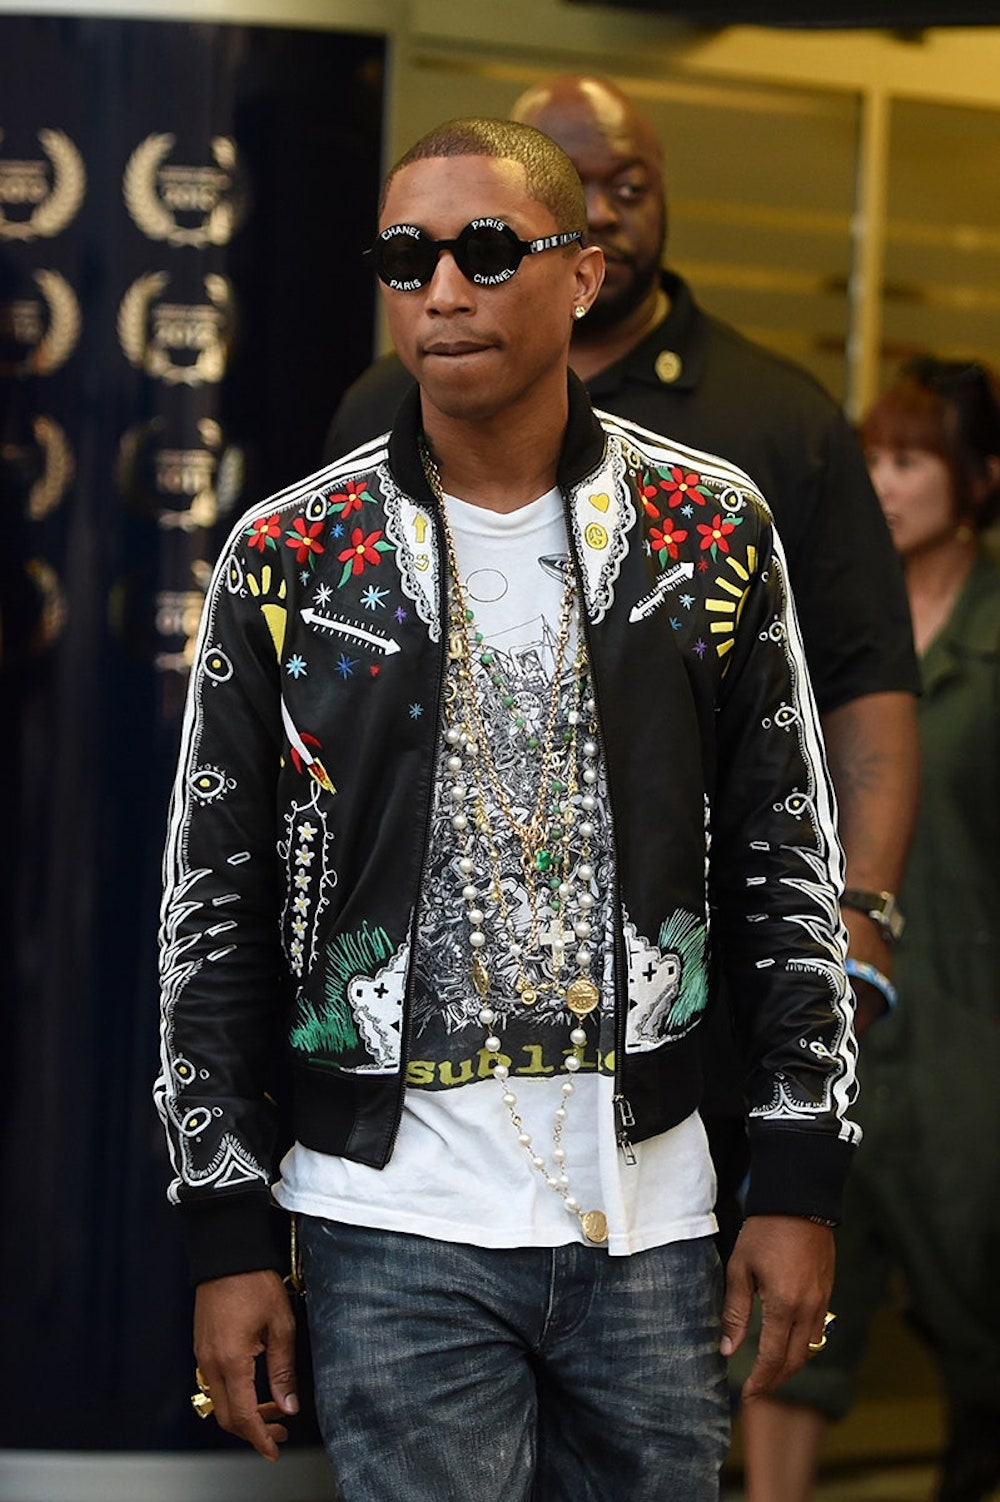 Pharrell Williams in the Retro Adidas Track Jacket